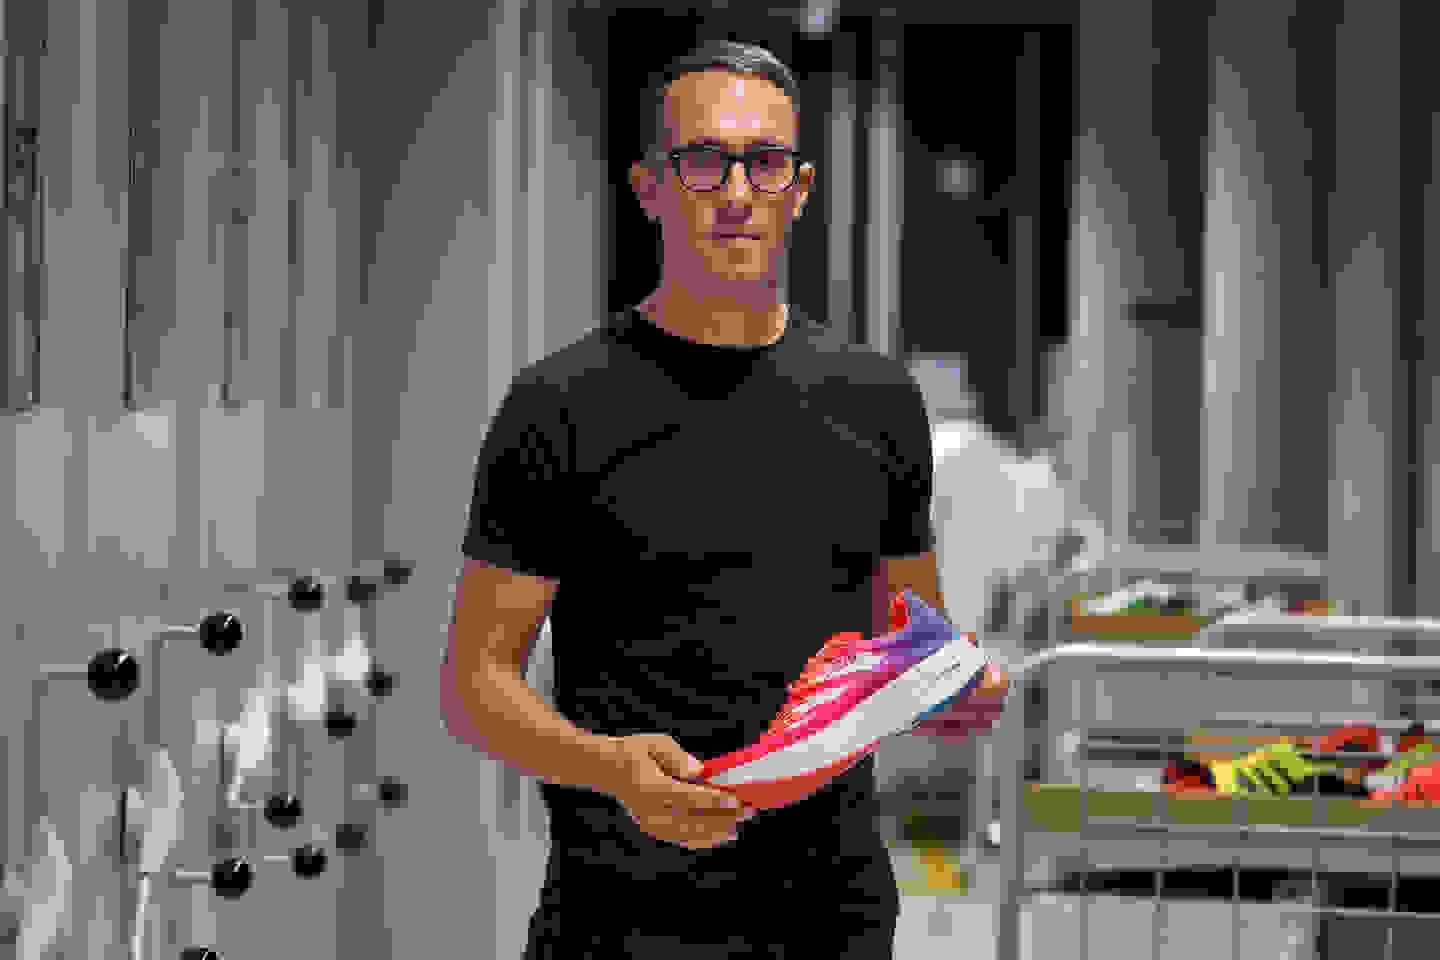 adidas design VP holding an ADIZERO running shoe